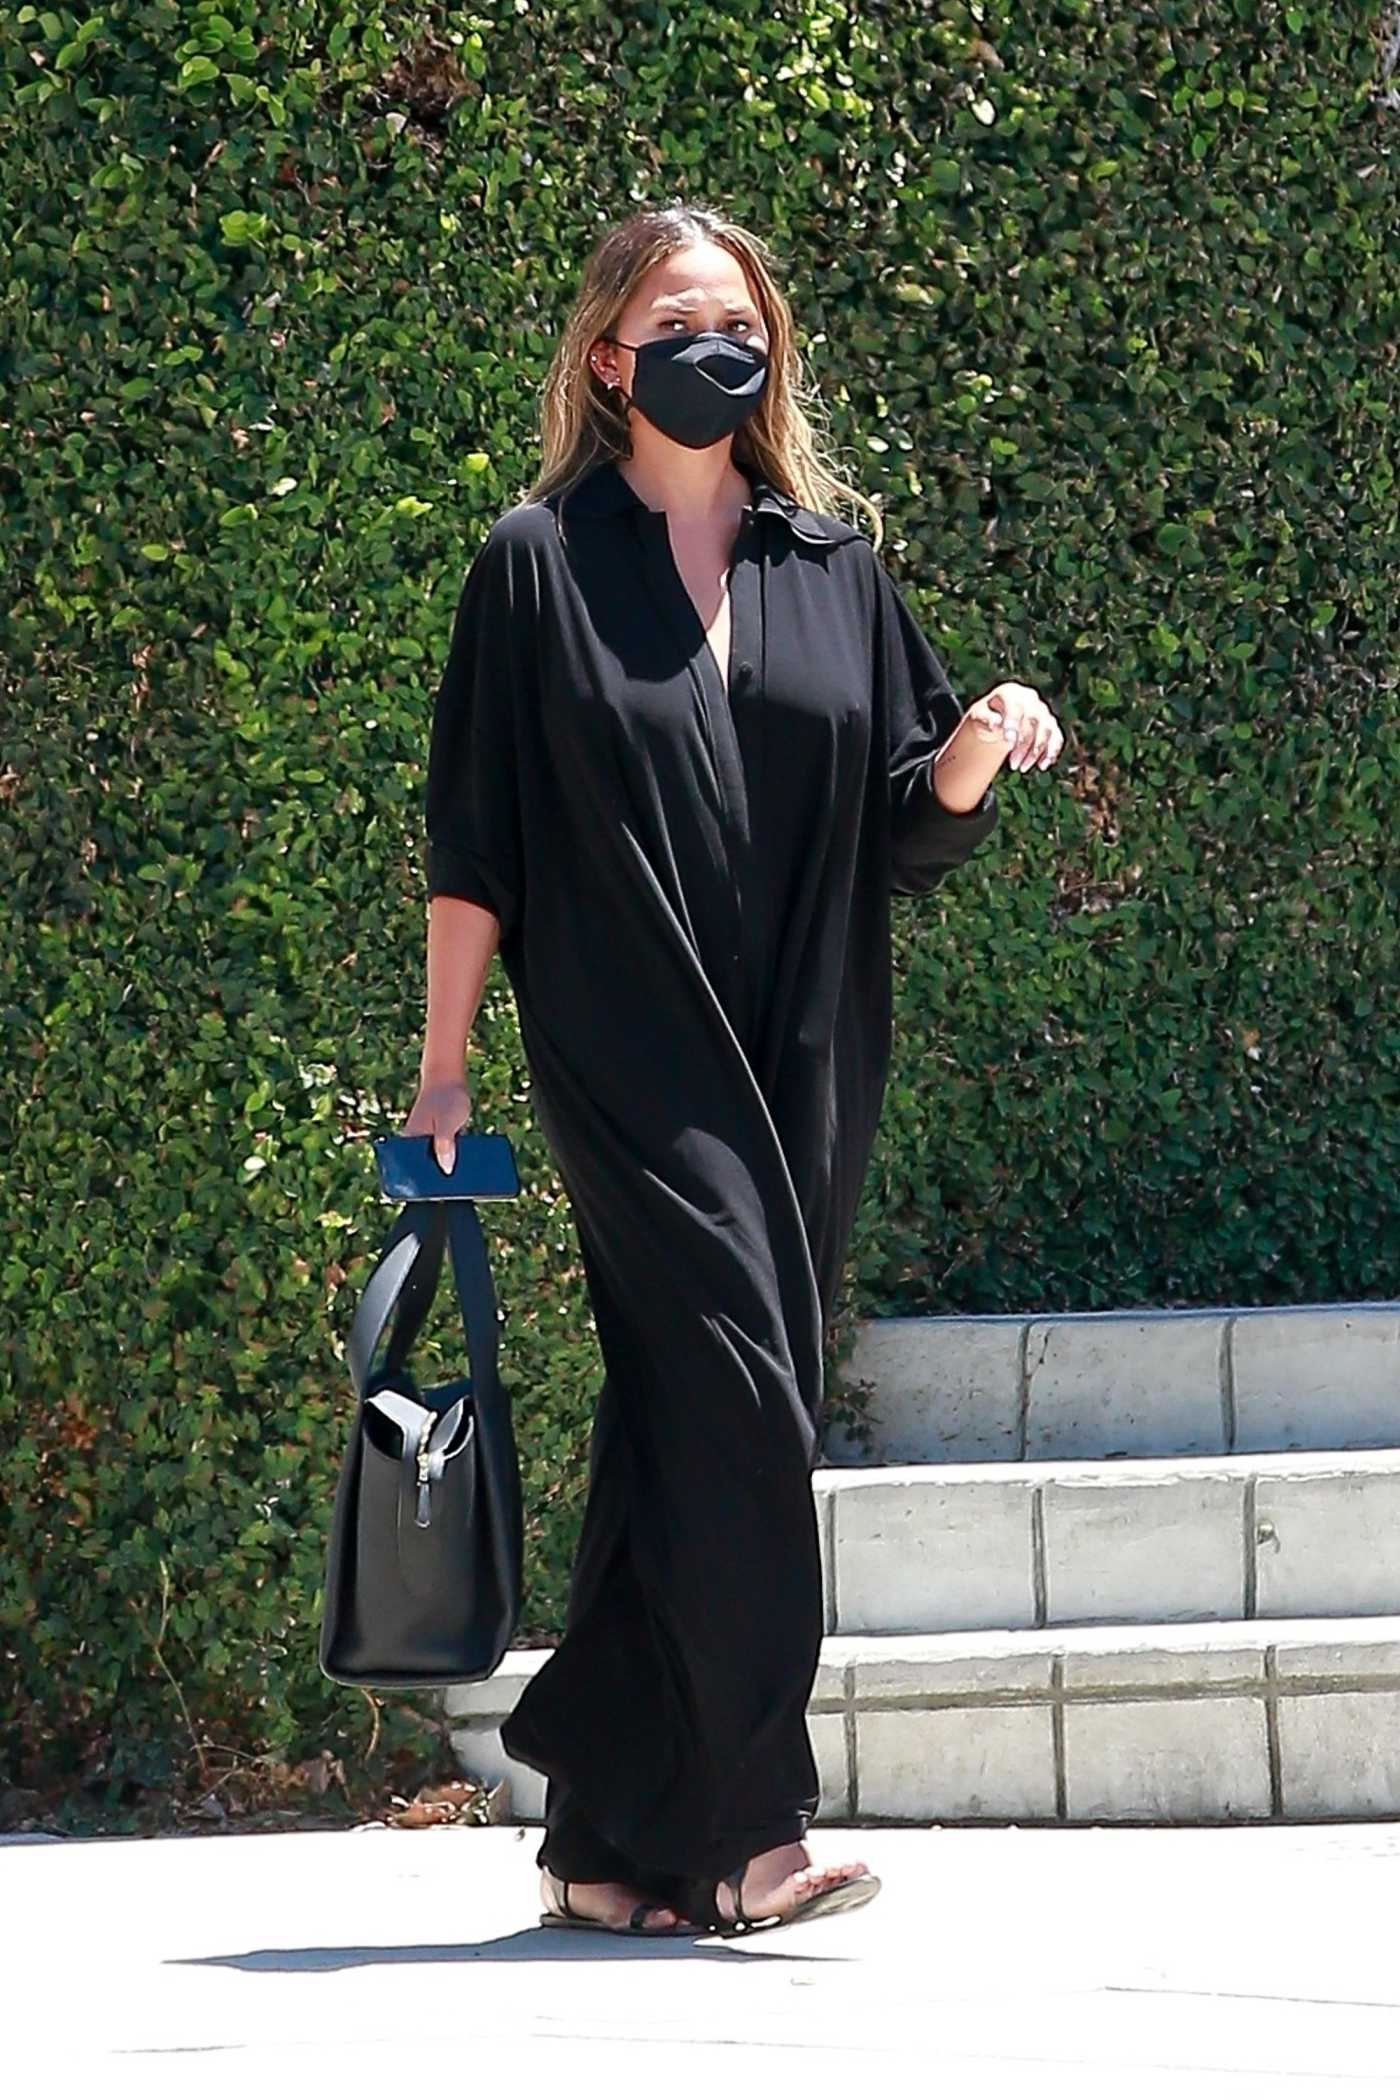 Chrissy Teigen in a Black Jumpsuit Was Seen Out in Los Angeles 07/31/2020